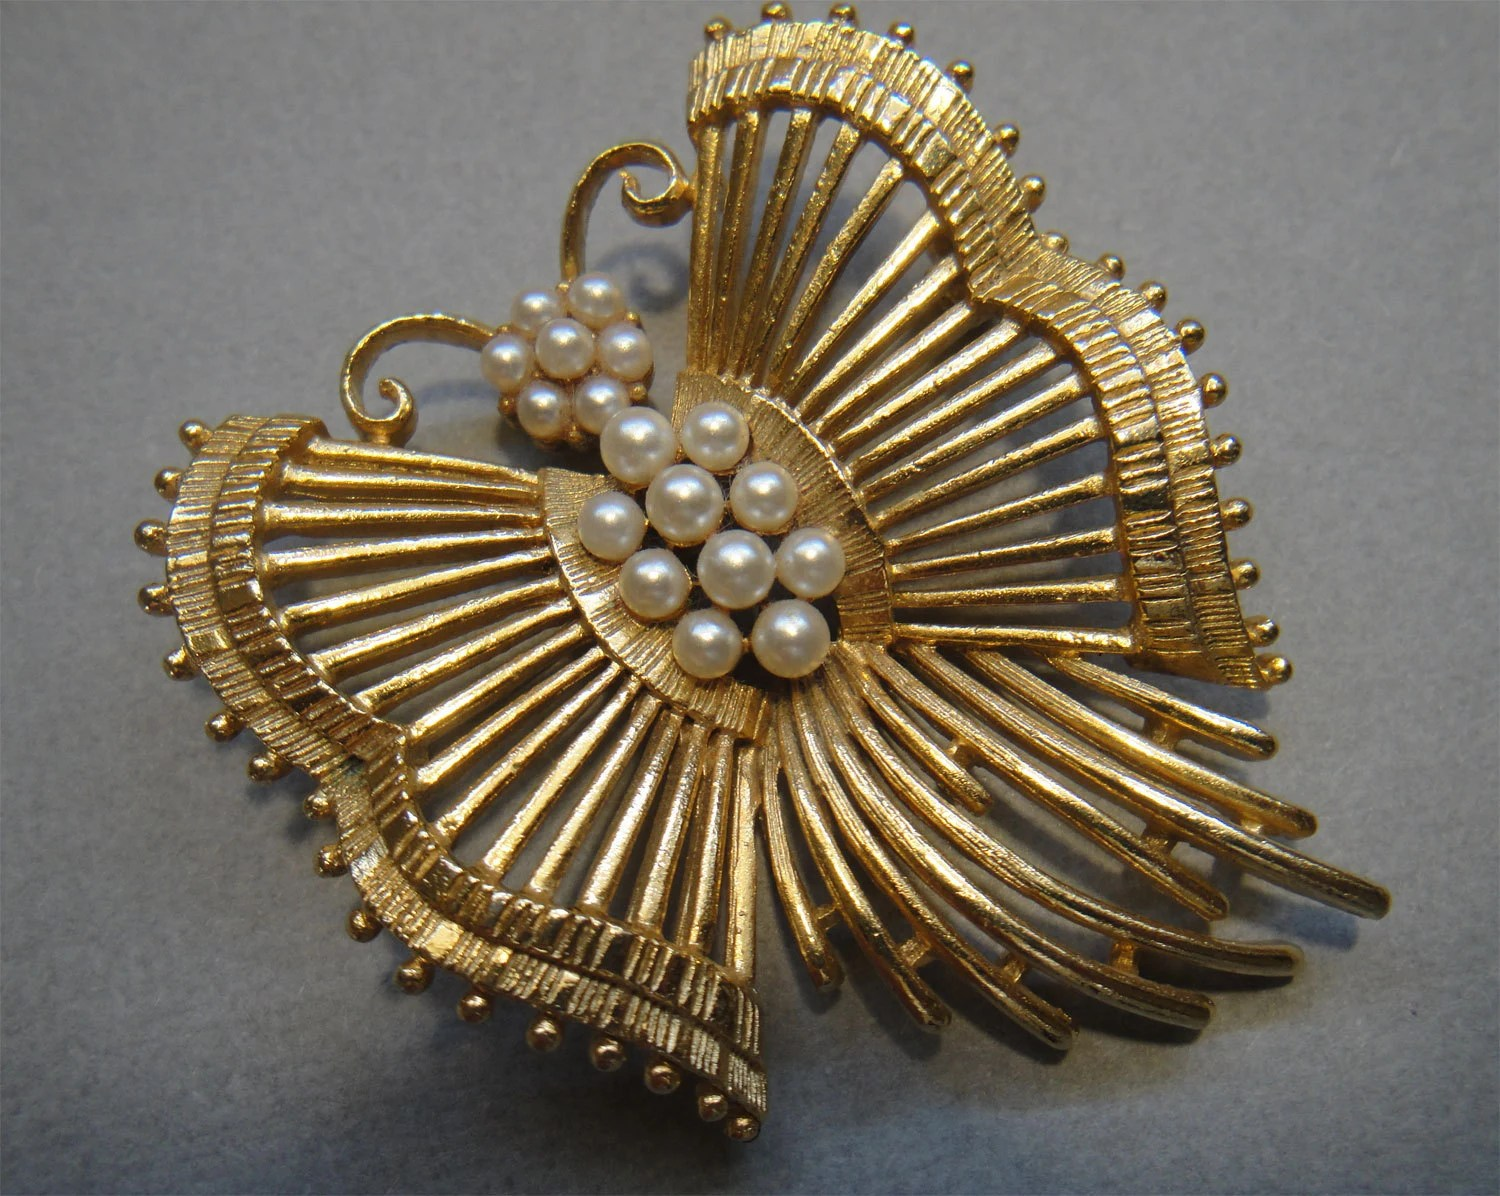 Vintage Butterfly Brooch Pin with Pearls by Lisner in pretty gold tone metal setting